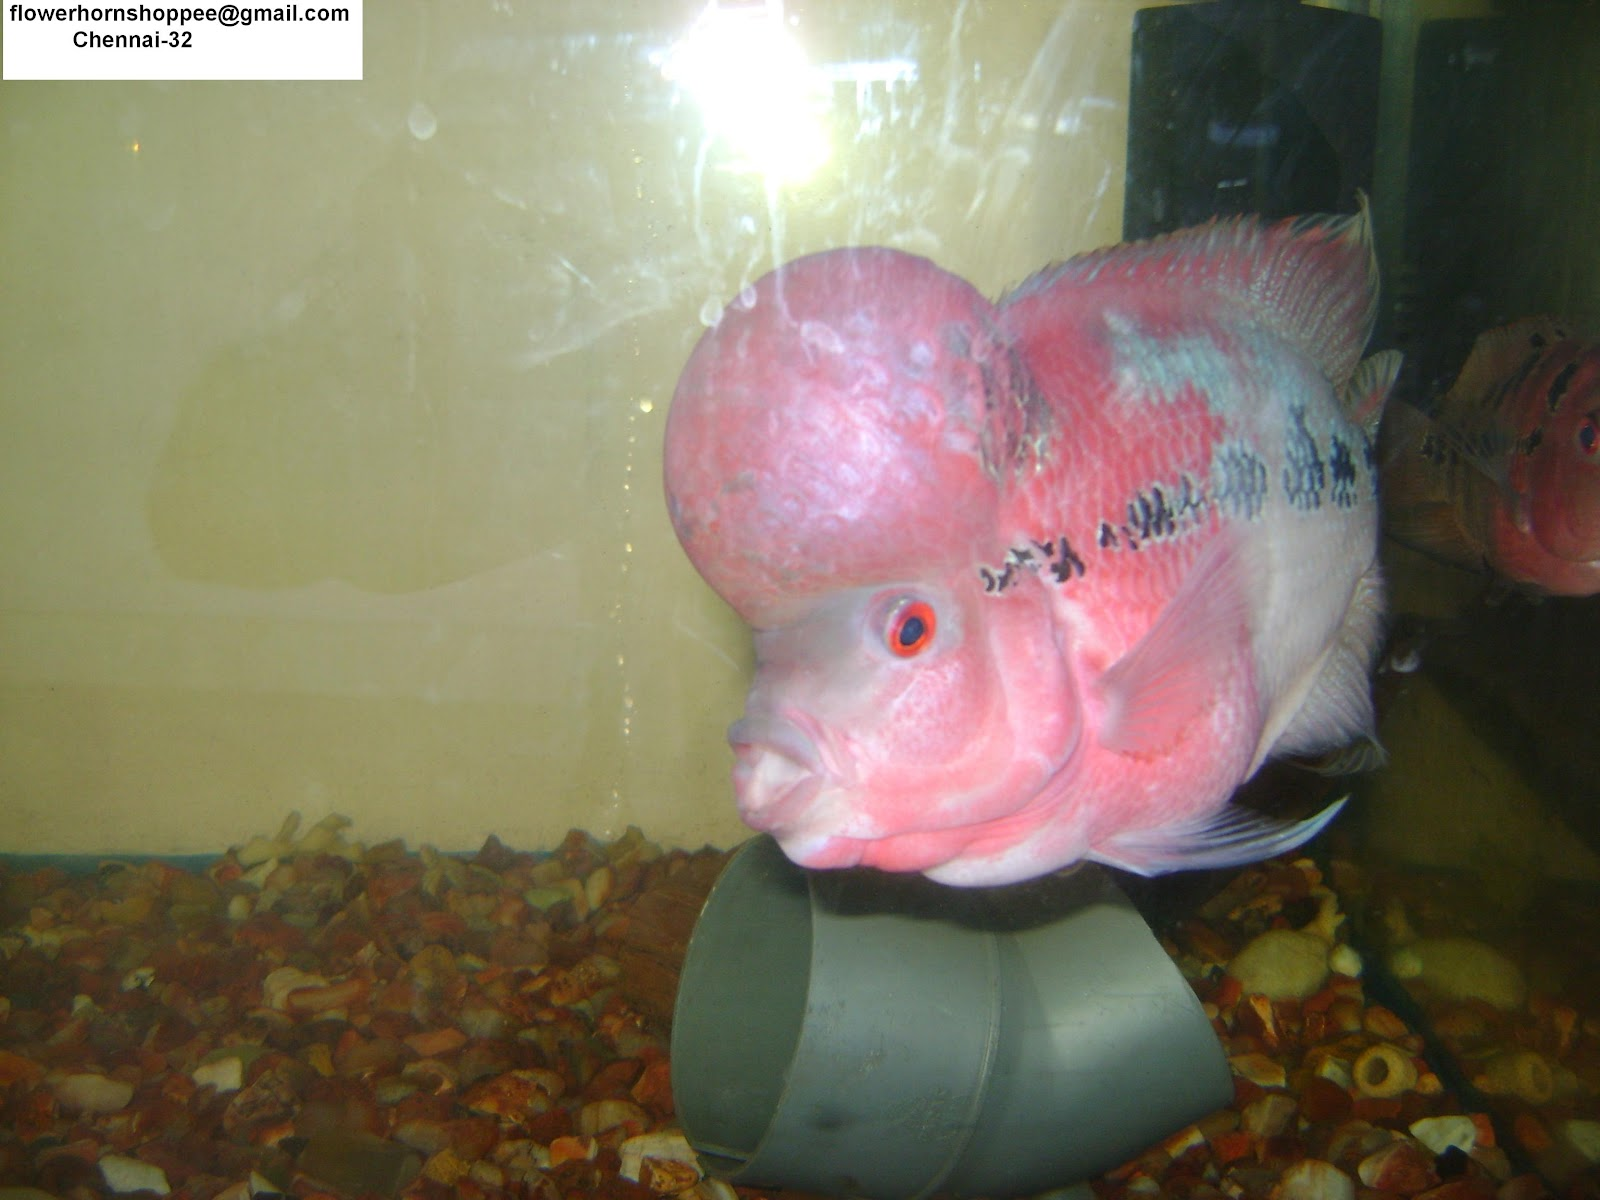 flowerhornshoppee: Master class flowerhorn with HUGH Hump Head